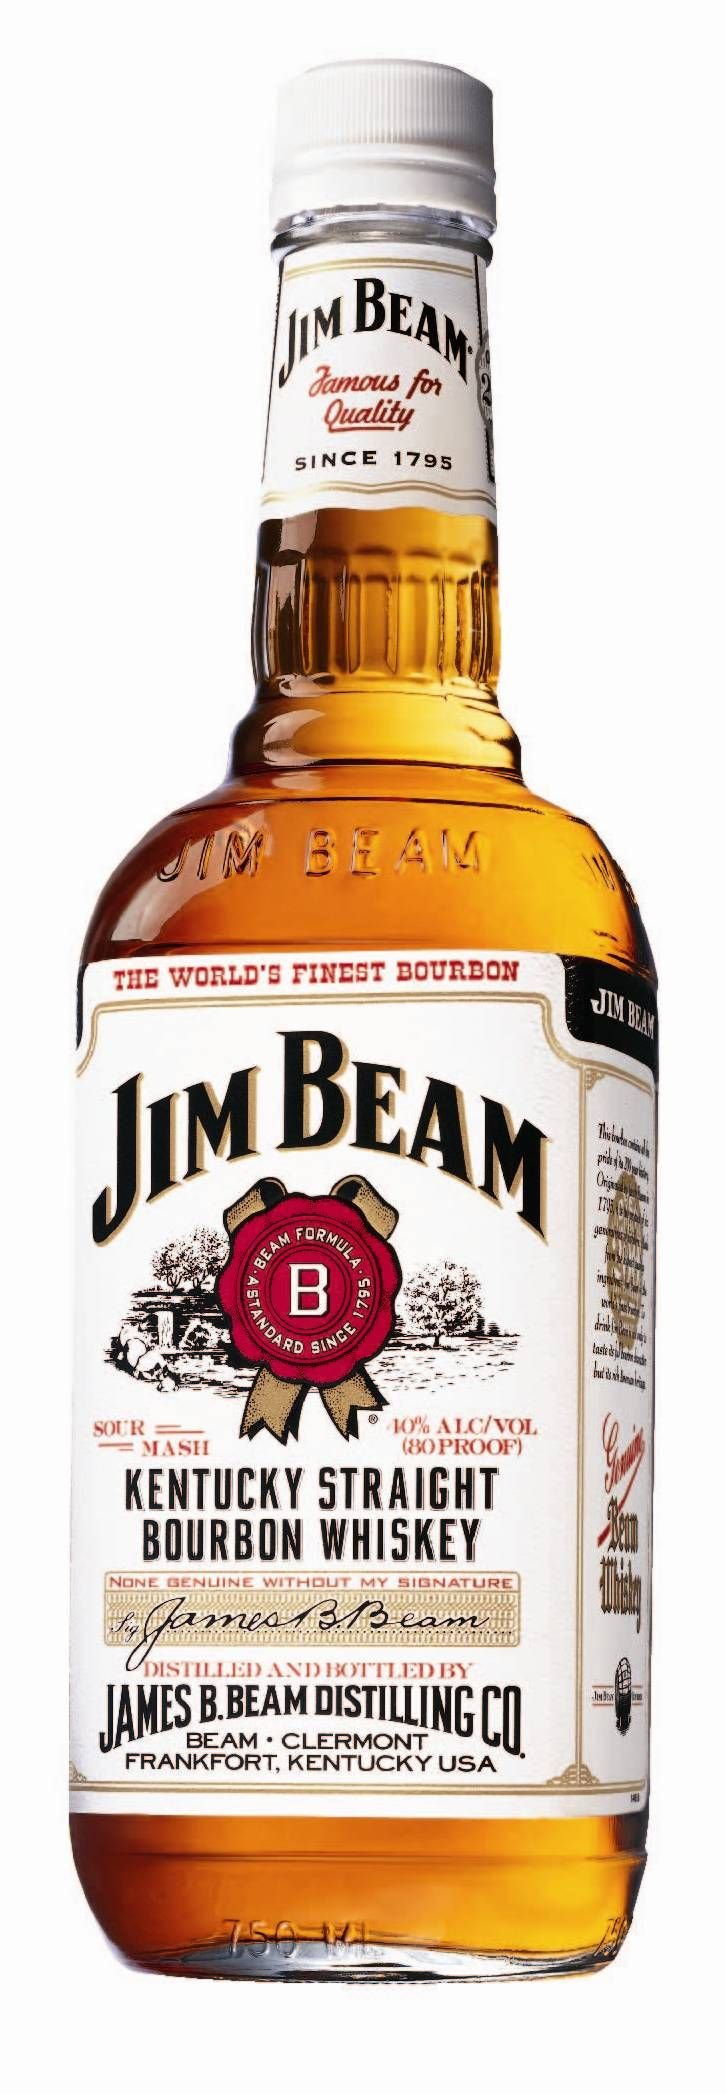 Jim Beam (White Label). Everybody knows this one. 95% of all bourbon is distilled in Kentucky, and half the bourbon distilled in Kentucky is distilled by Beam.